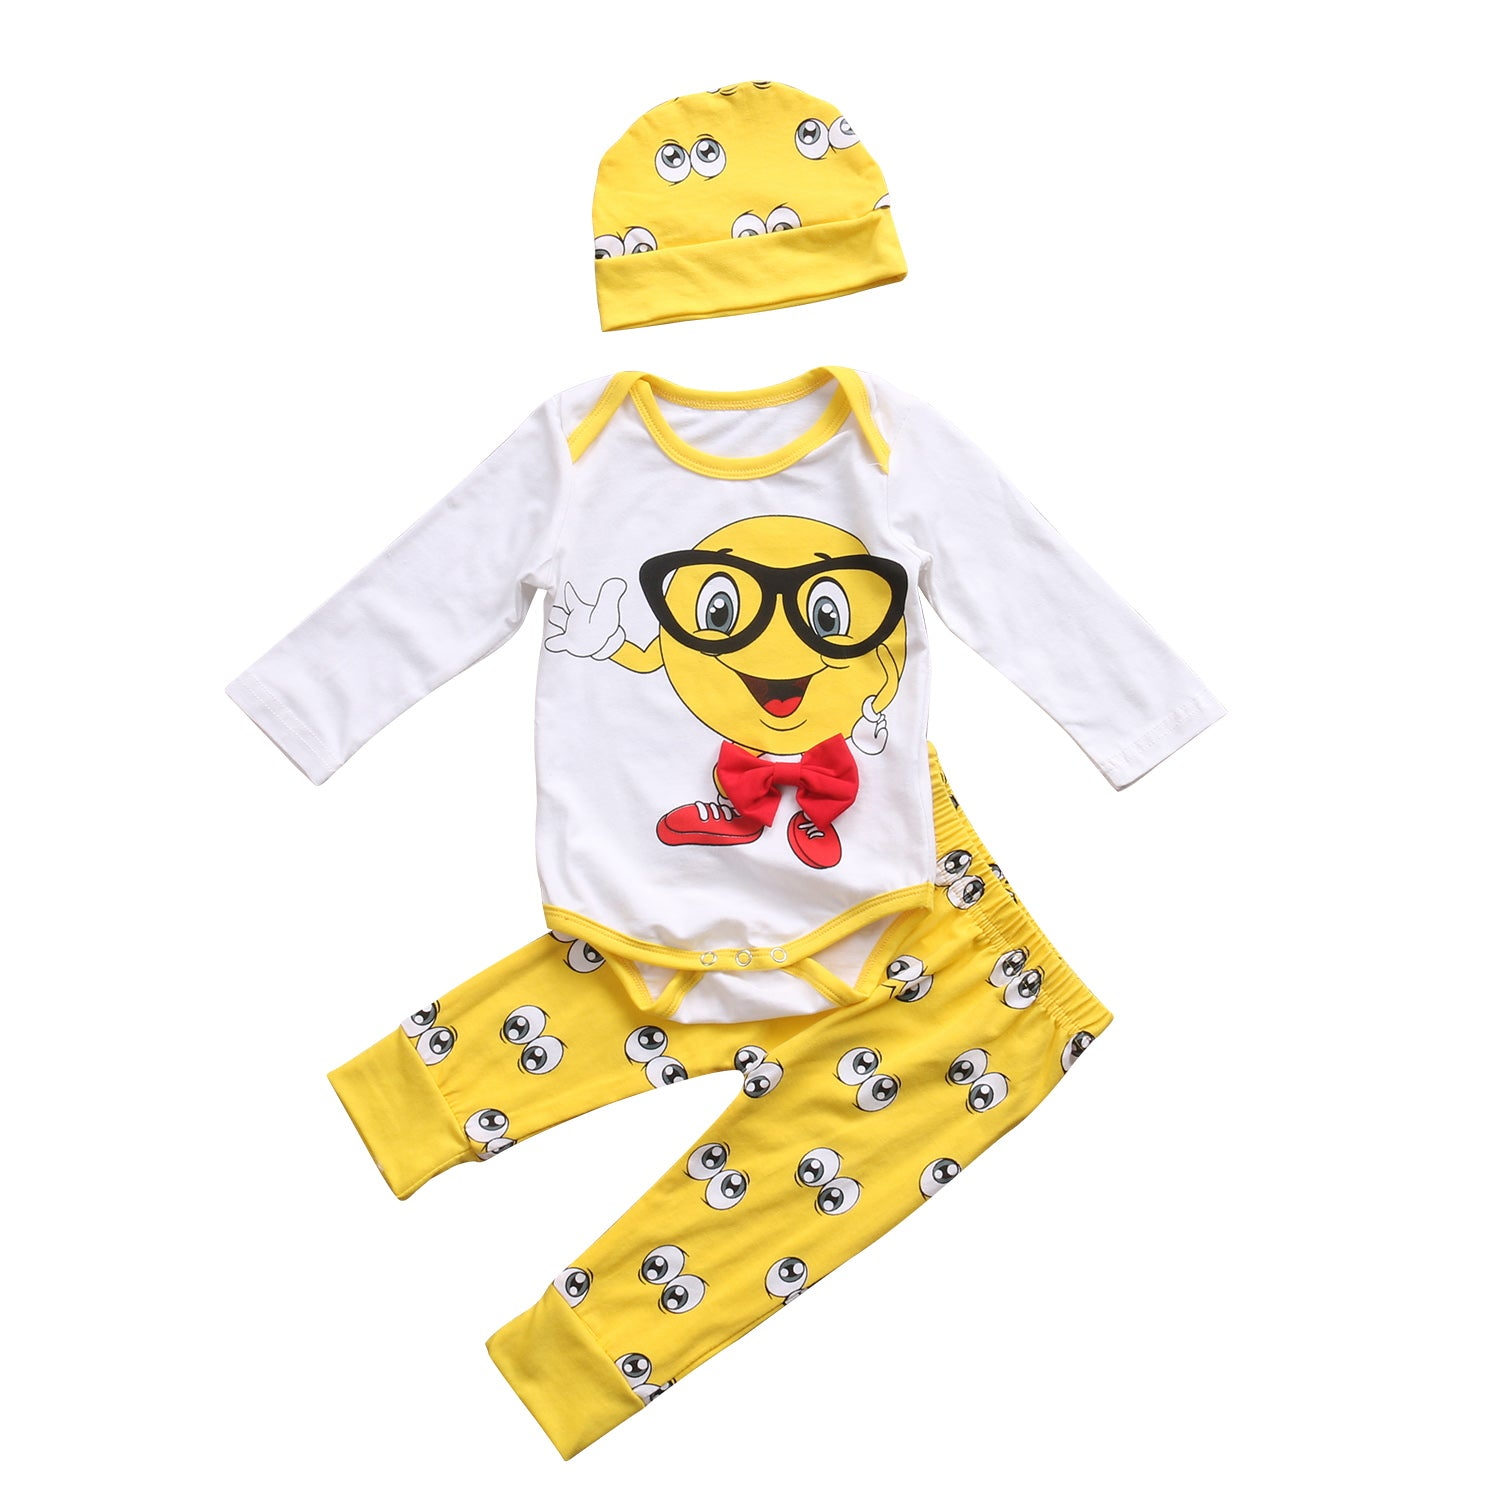 5c00c23cc17d 0-24M Cute Newborn Baby Boys Girls Outfit Clothes Catoon Pattern Romper  Jumpsuit Bodysuit Long